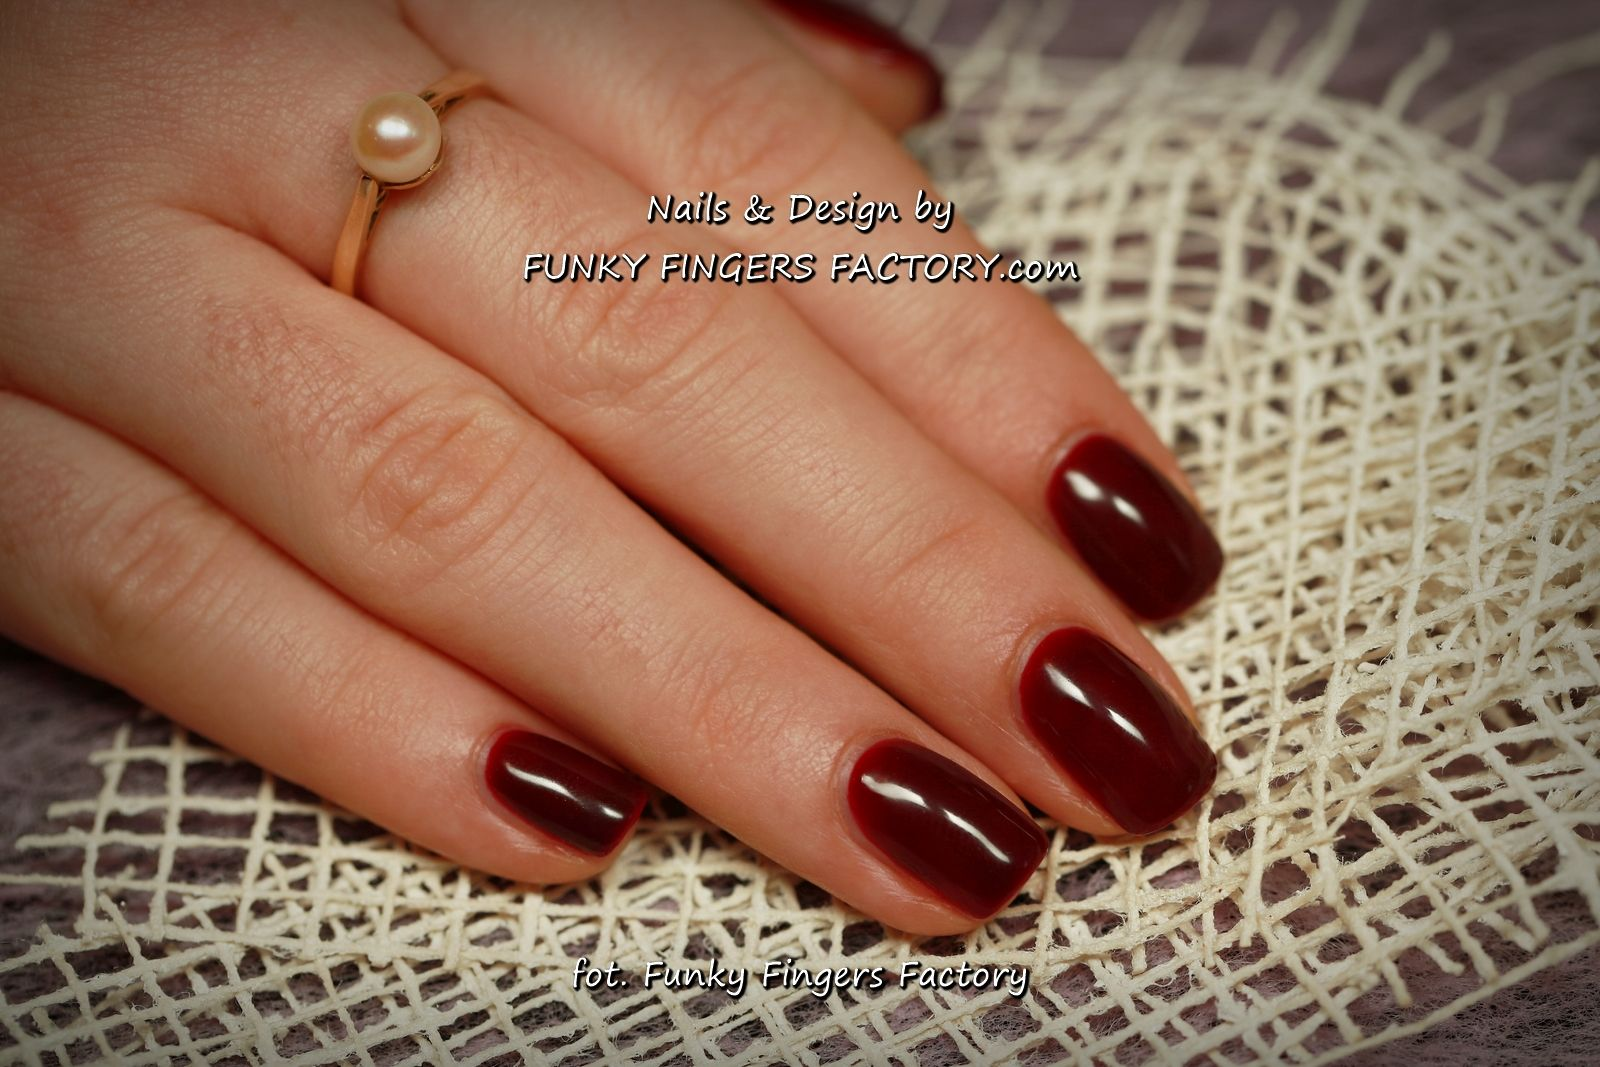 Gelish Classic Burgundy Nails A Touch Of Sass By Www Funkyfingersfactory Com Nails Burgundy Nails Gel Nail Colors